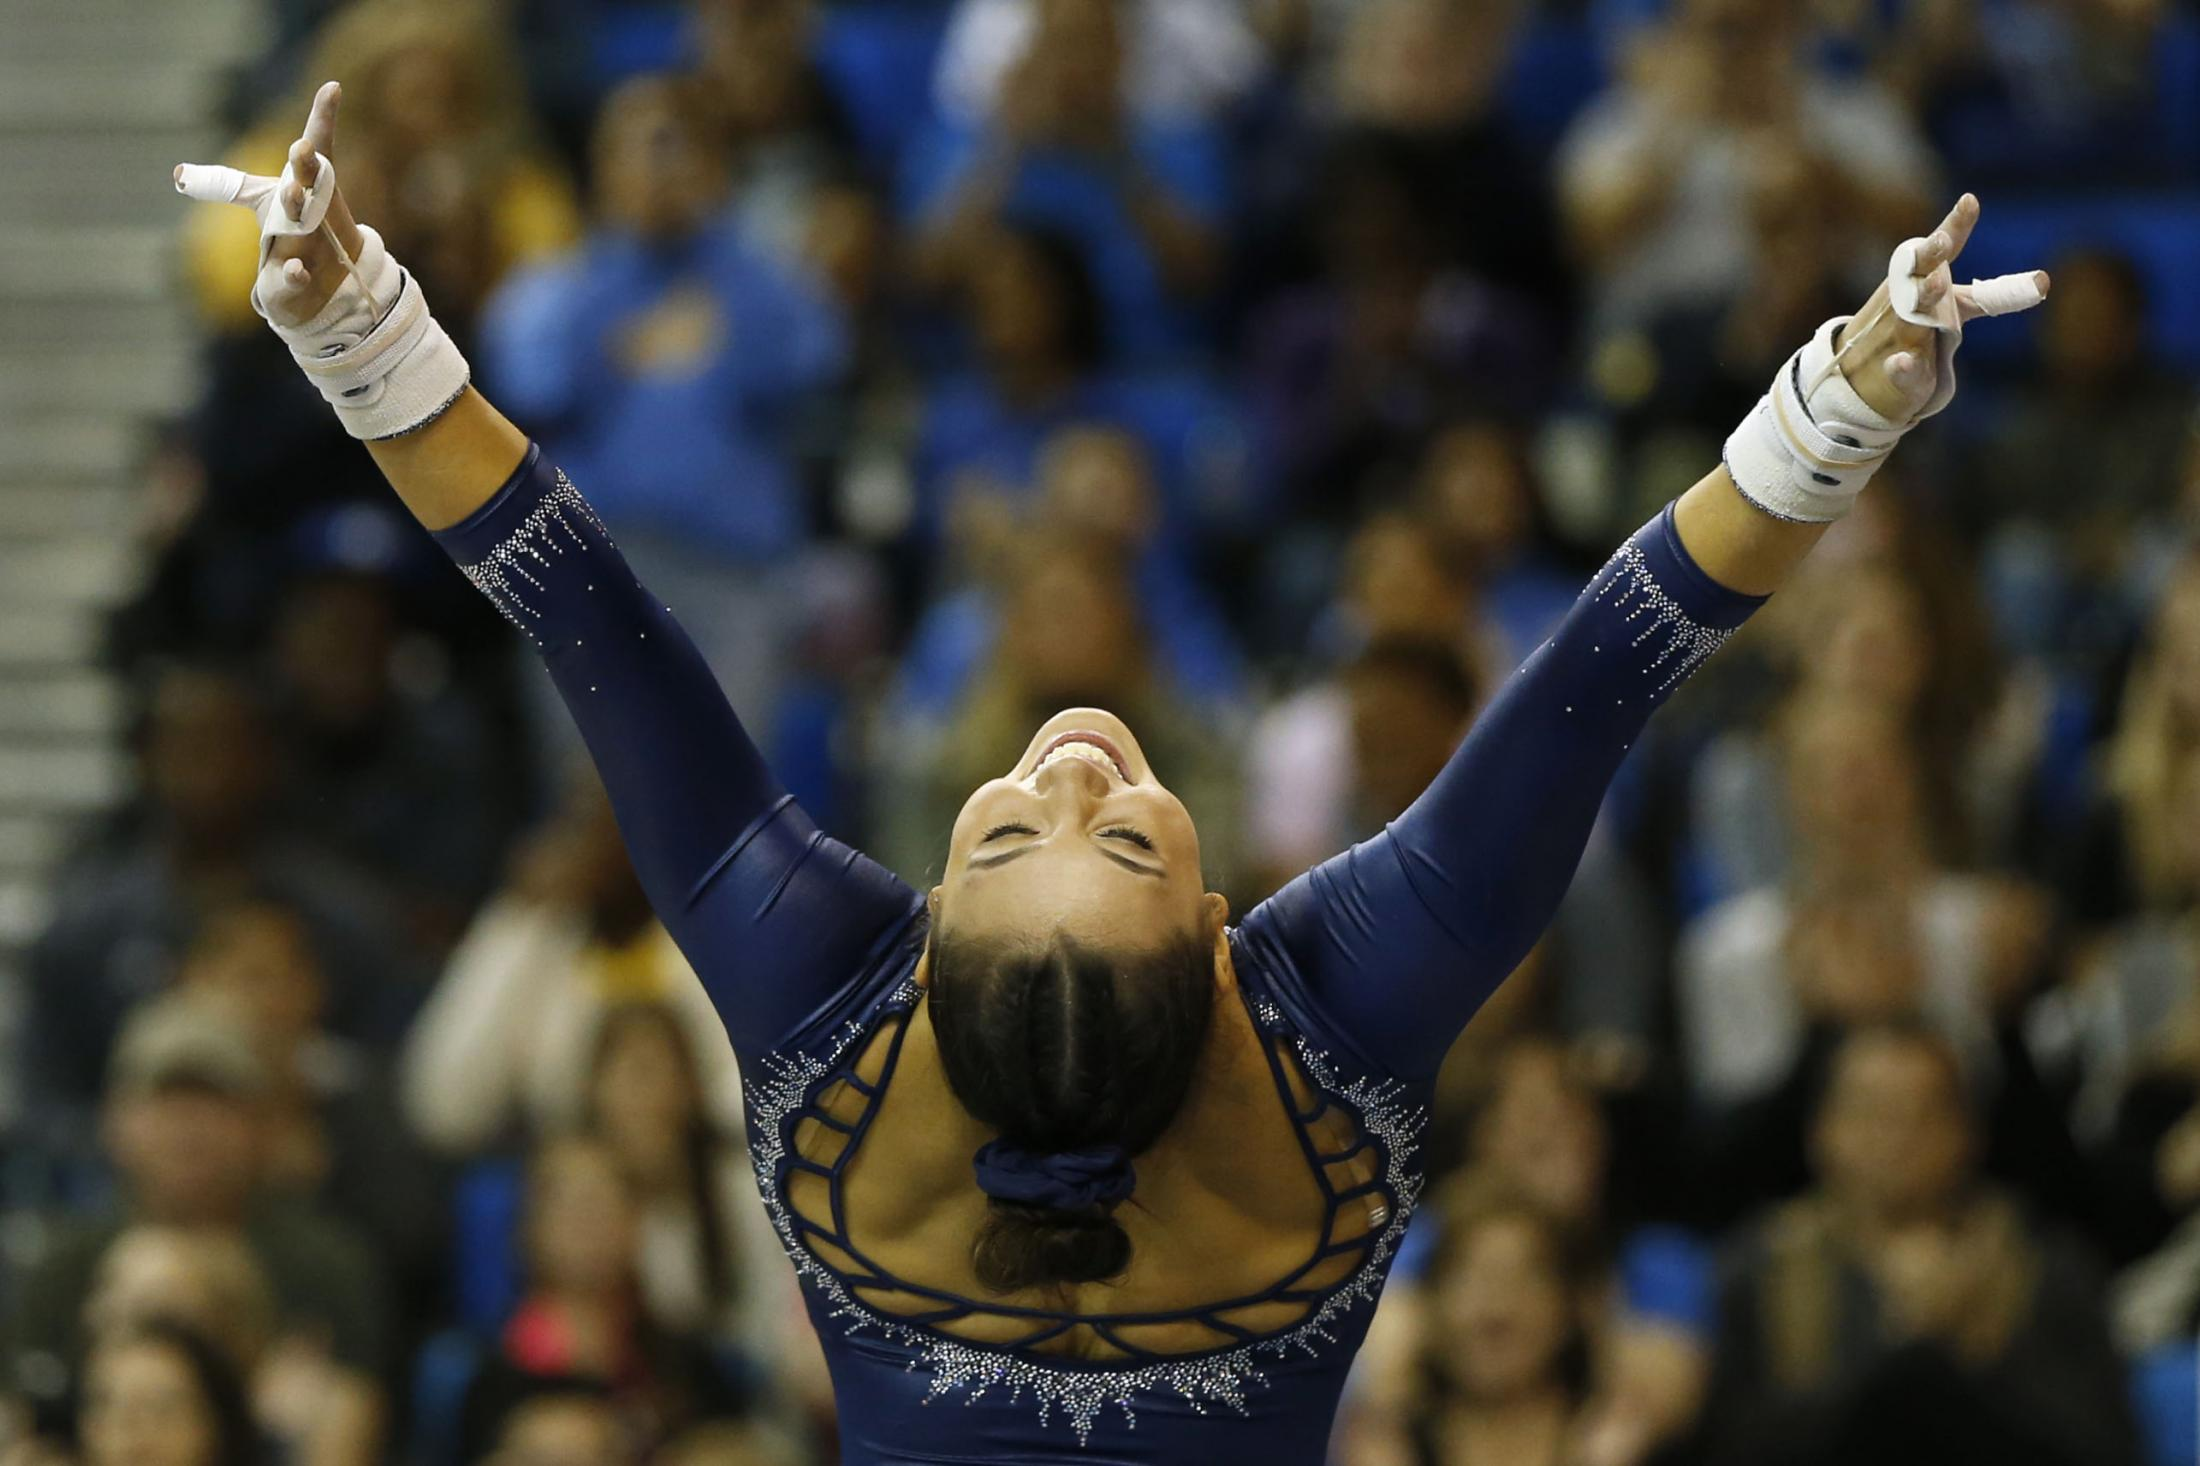 LOS ANGELES, CALIFORNIA - MARCH 10:  Kyla Ross dismounts from her uneven parallel bars routine during a meet against Stanford at Pauley Pavilion on March 10, 2019 in Los Angeles, California. (Photo by Katharine Lotze/Getty Images)